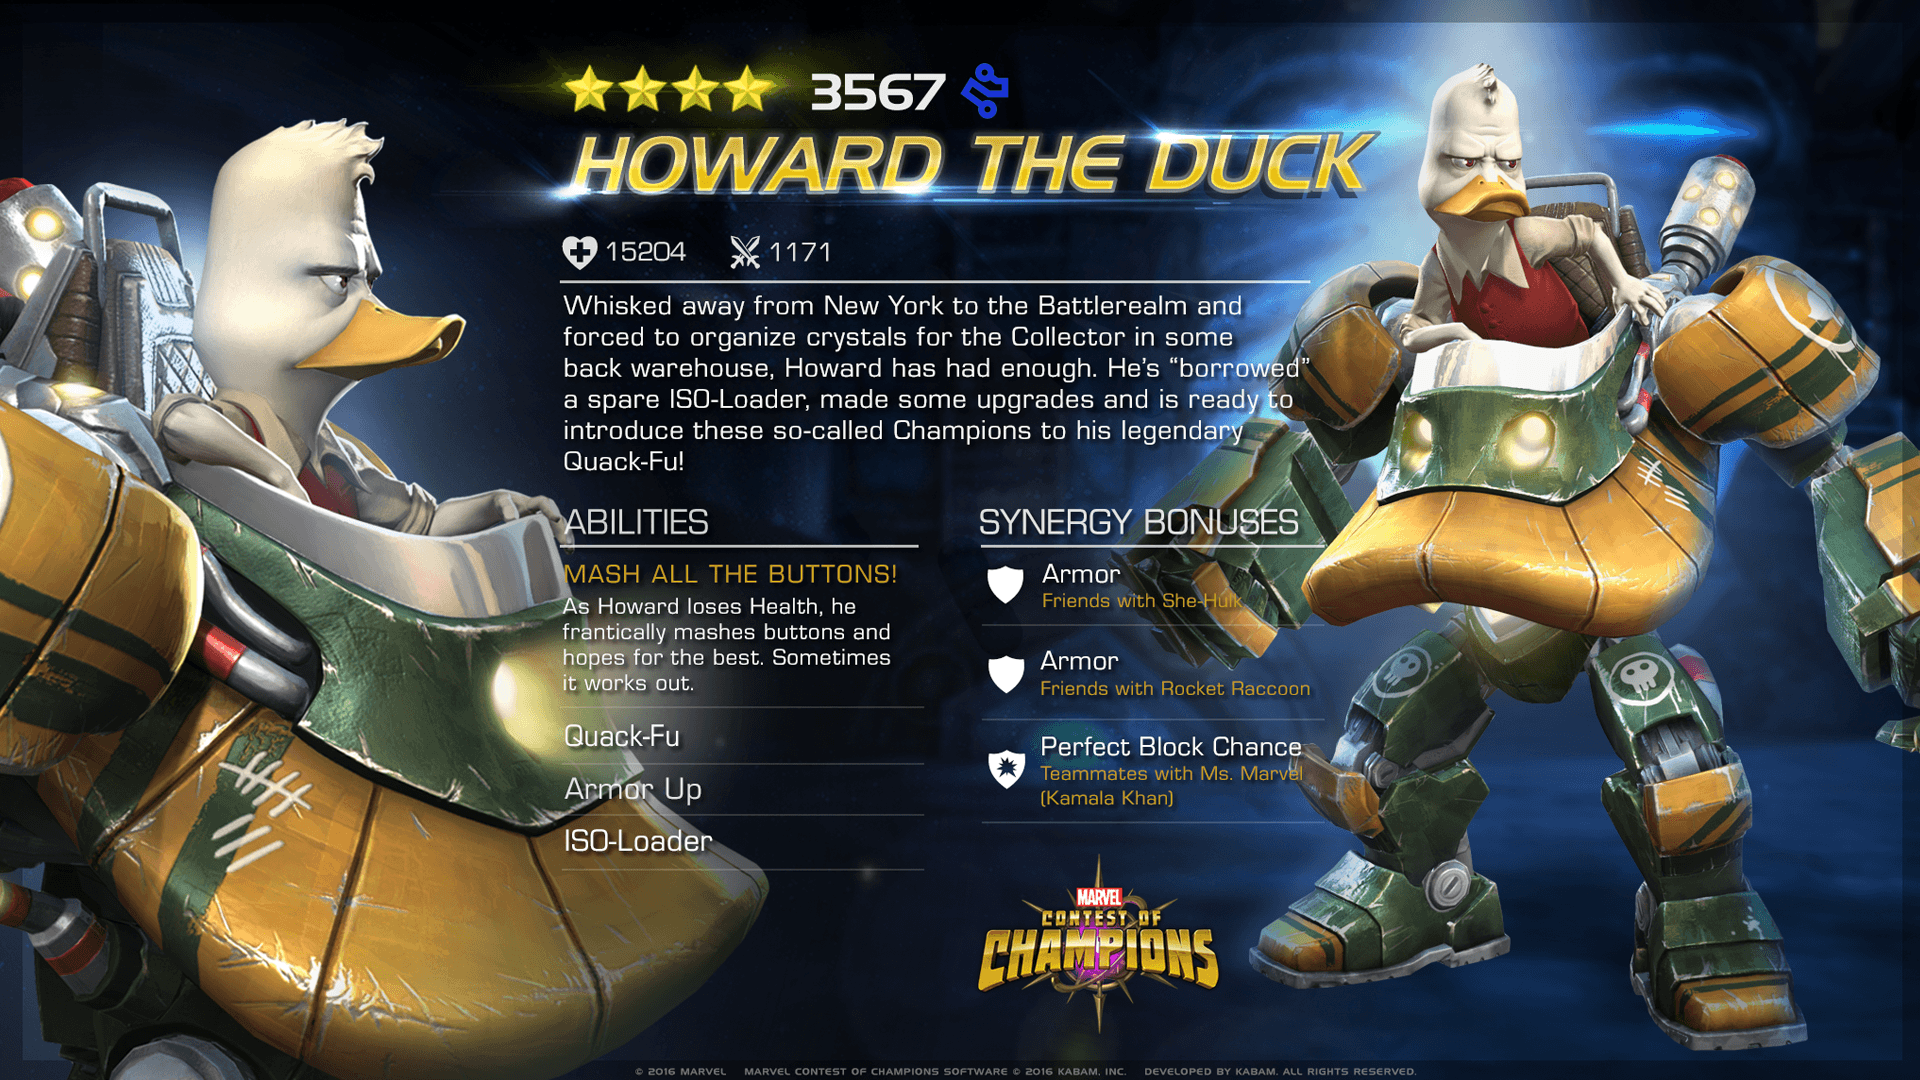 ENTERING MARVEL CONTEST OF CHAMPIONS: HOWARD THE DUCK